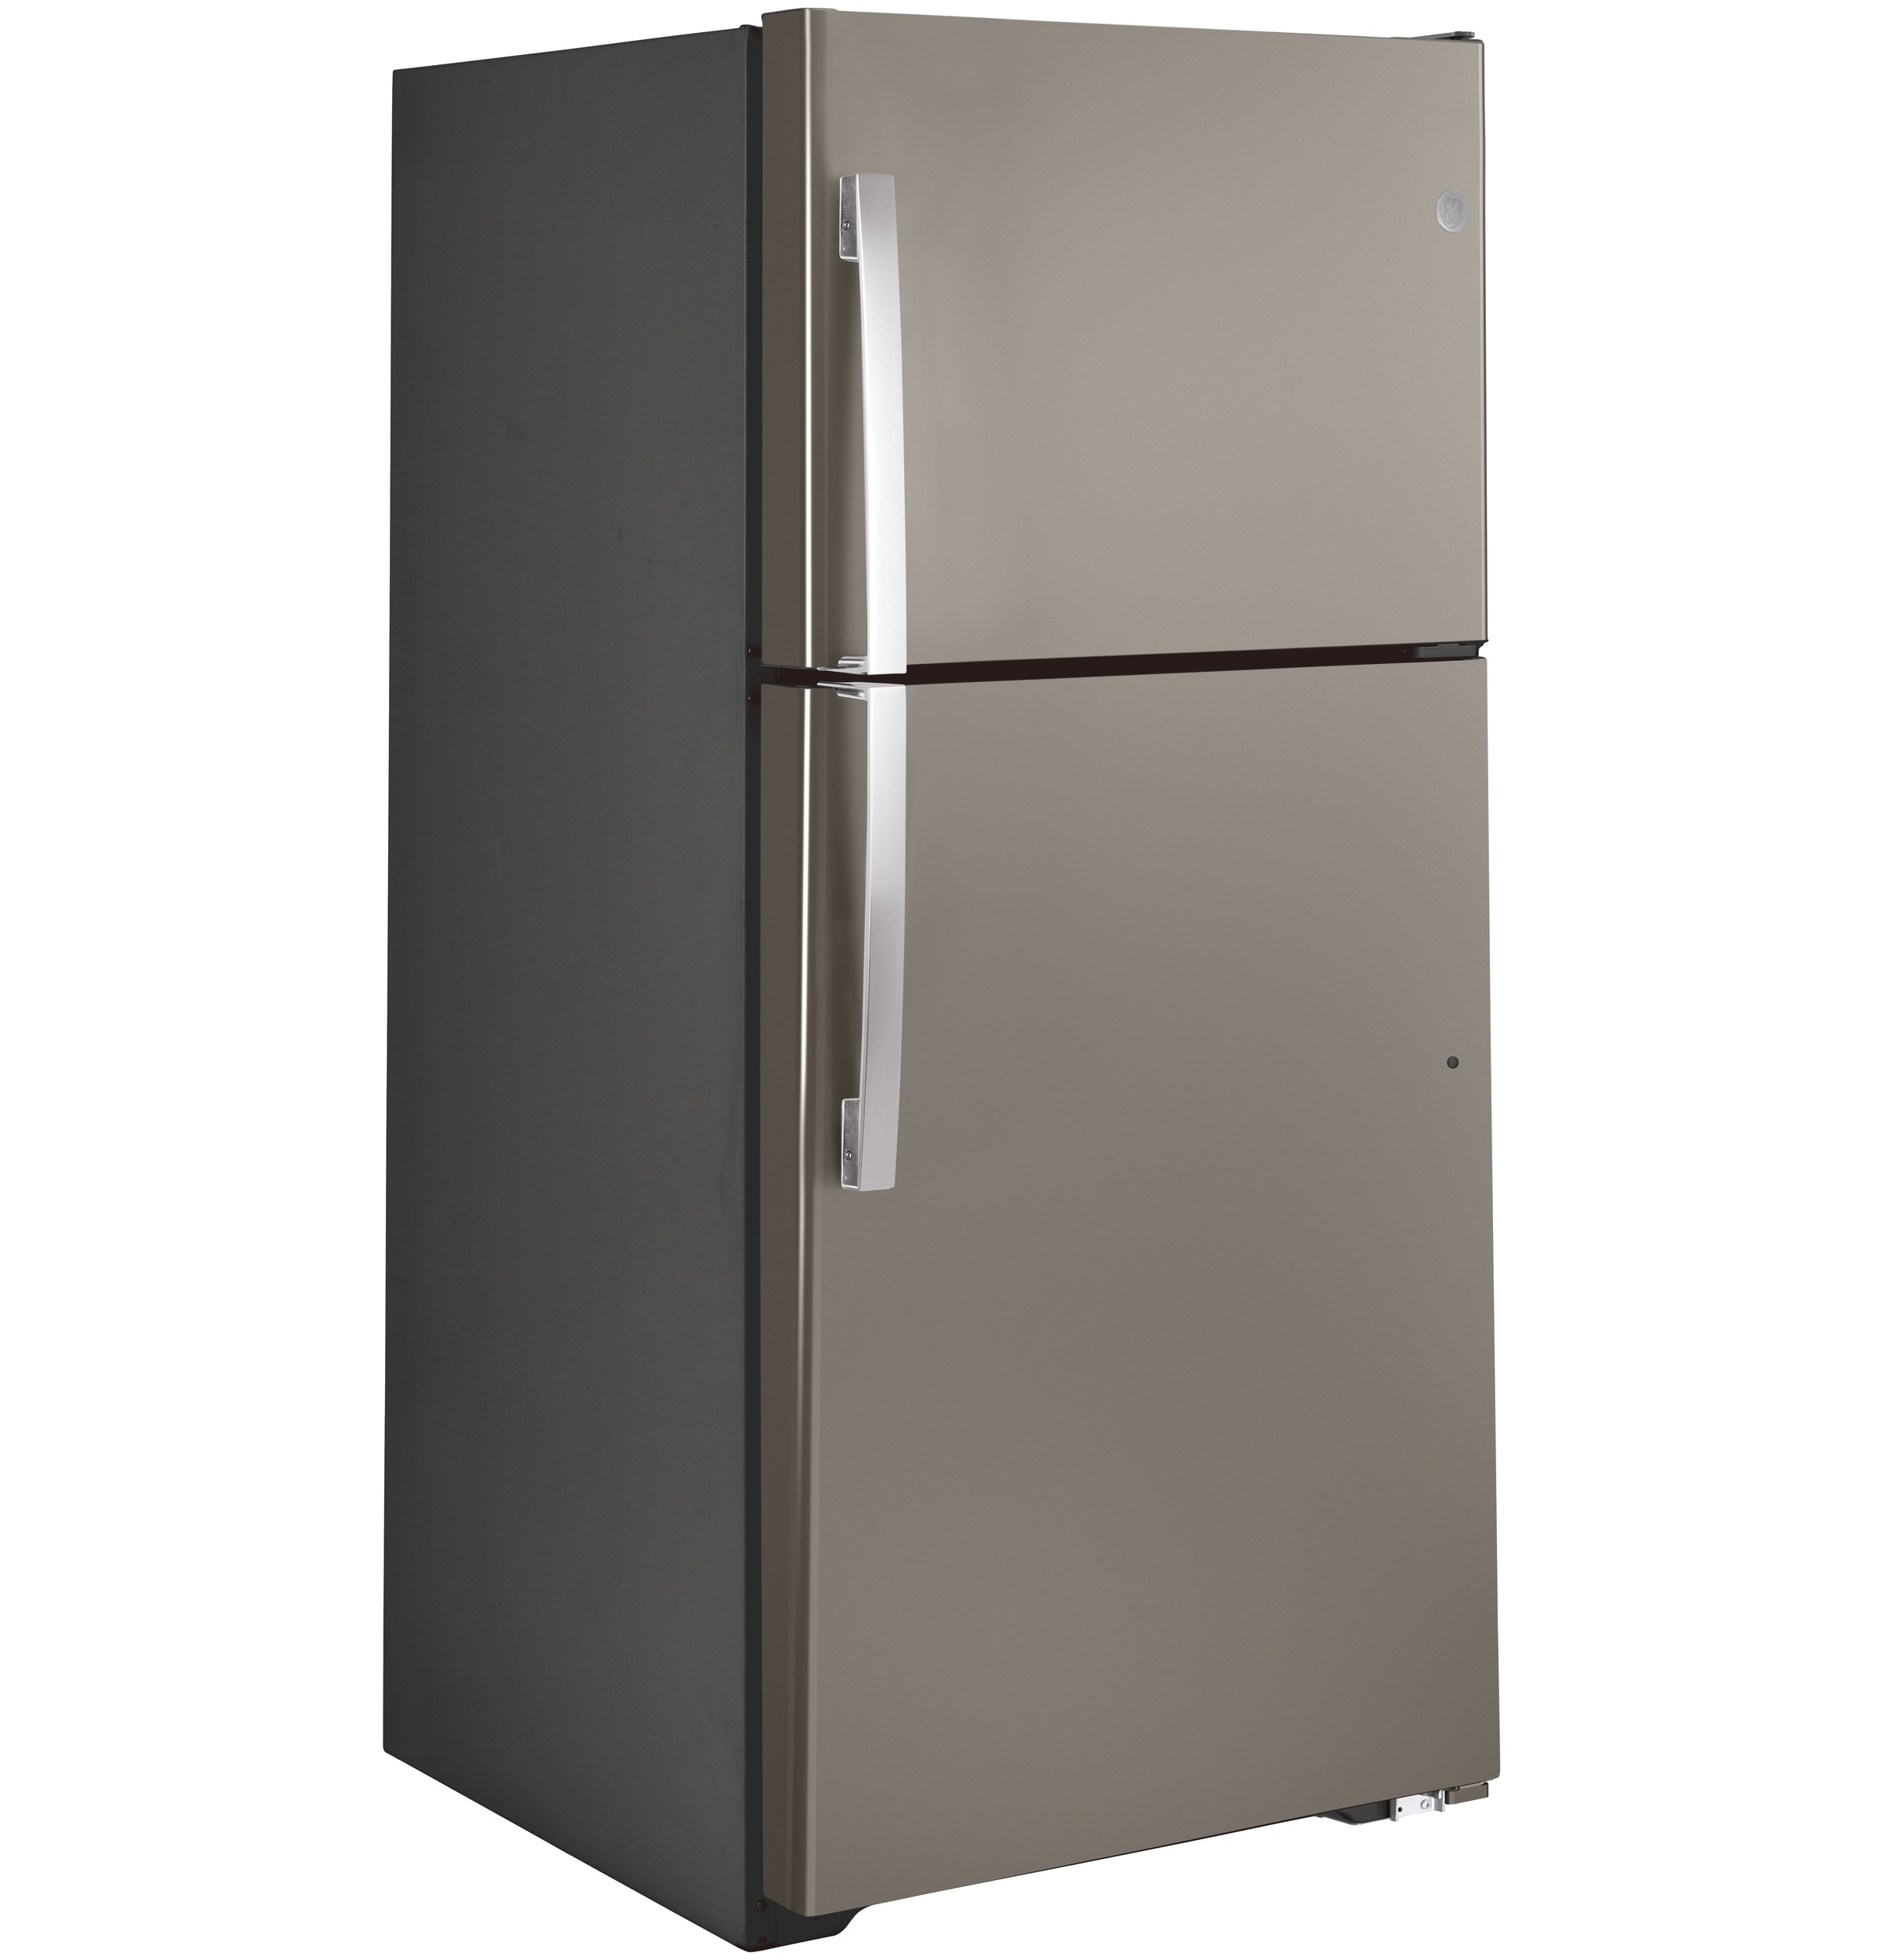 Model: GTS22KMNRES | GE GE® 21.9 Cu. Ft. Top-Freezer Refrigerator